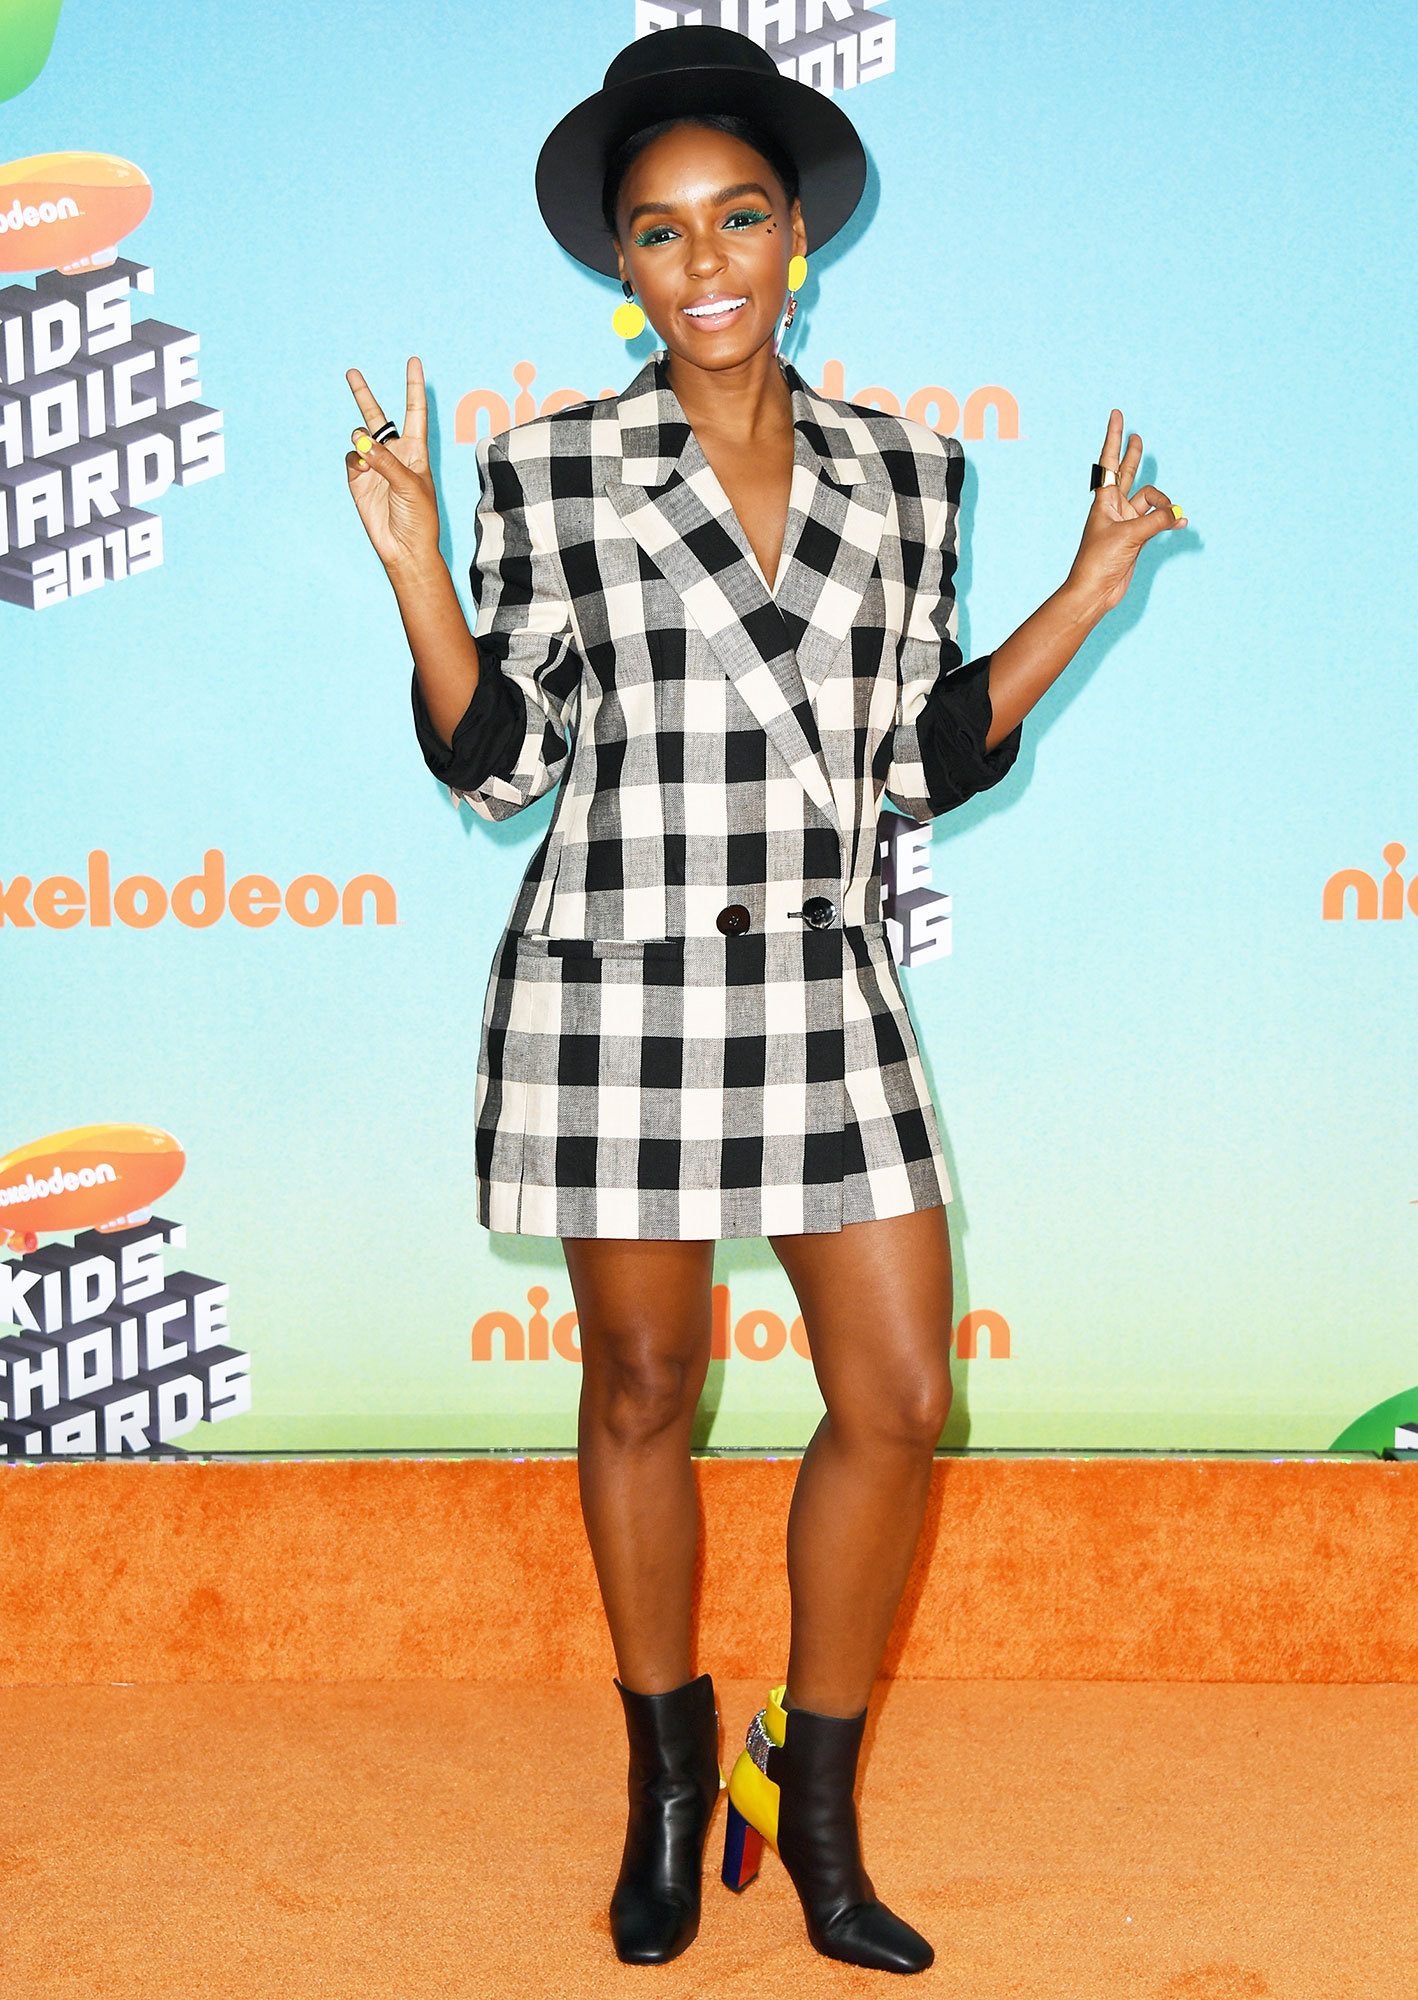 """Nickelodeon Kids Choice Awards 2019 Janelle Monae - Embracing the pantsless trend, the """"Make Me Feel"""" singer wore a black and white checkered blazer from Petar Petrov blazer which she accessorized with cool Christian Louboutin booties and a YVY hat."""